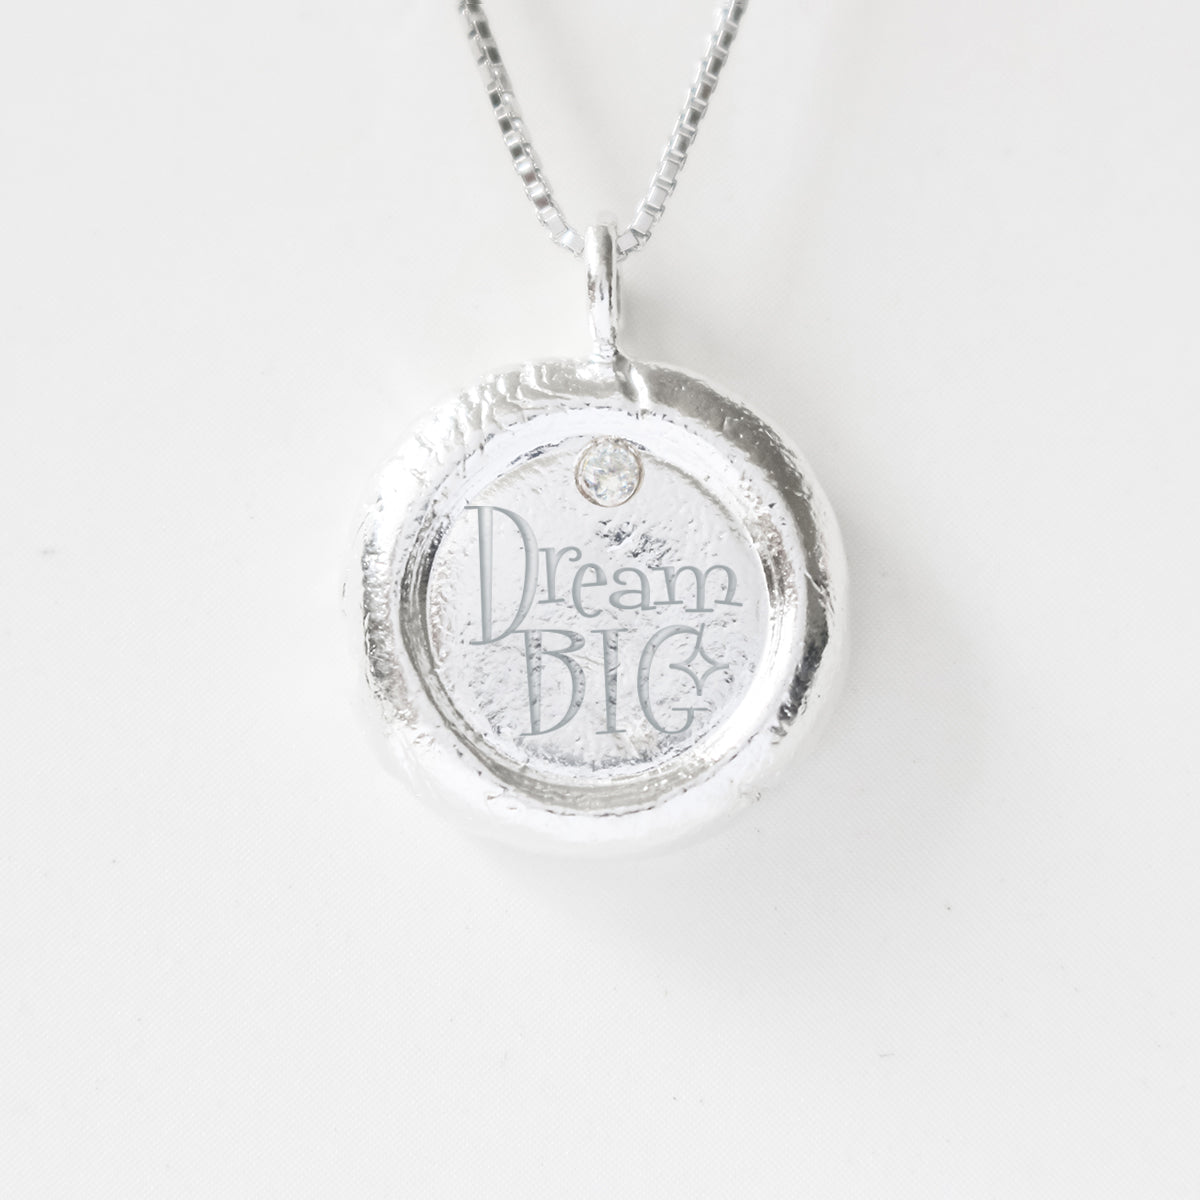 Dream Big - Empowerment Diamond Silver Necklace